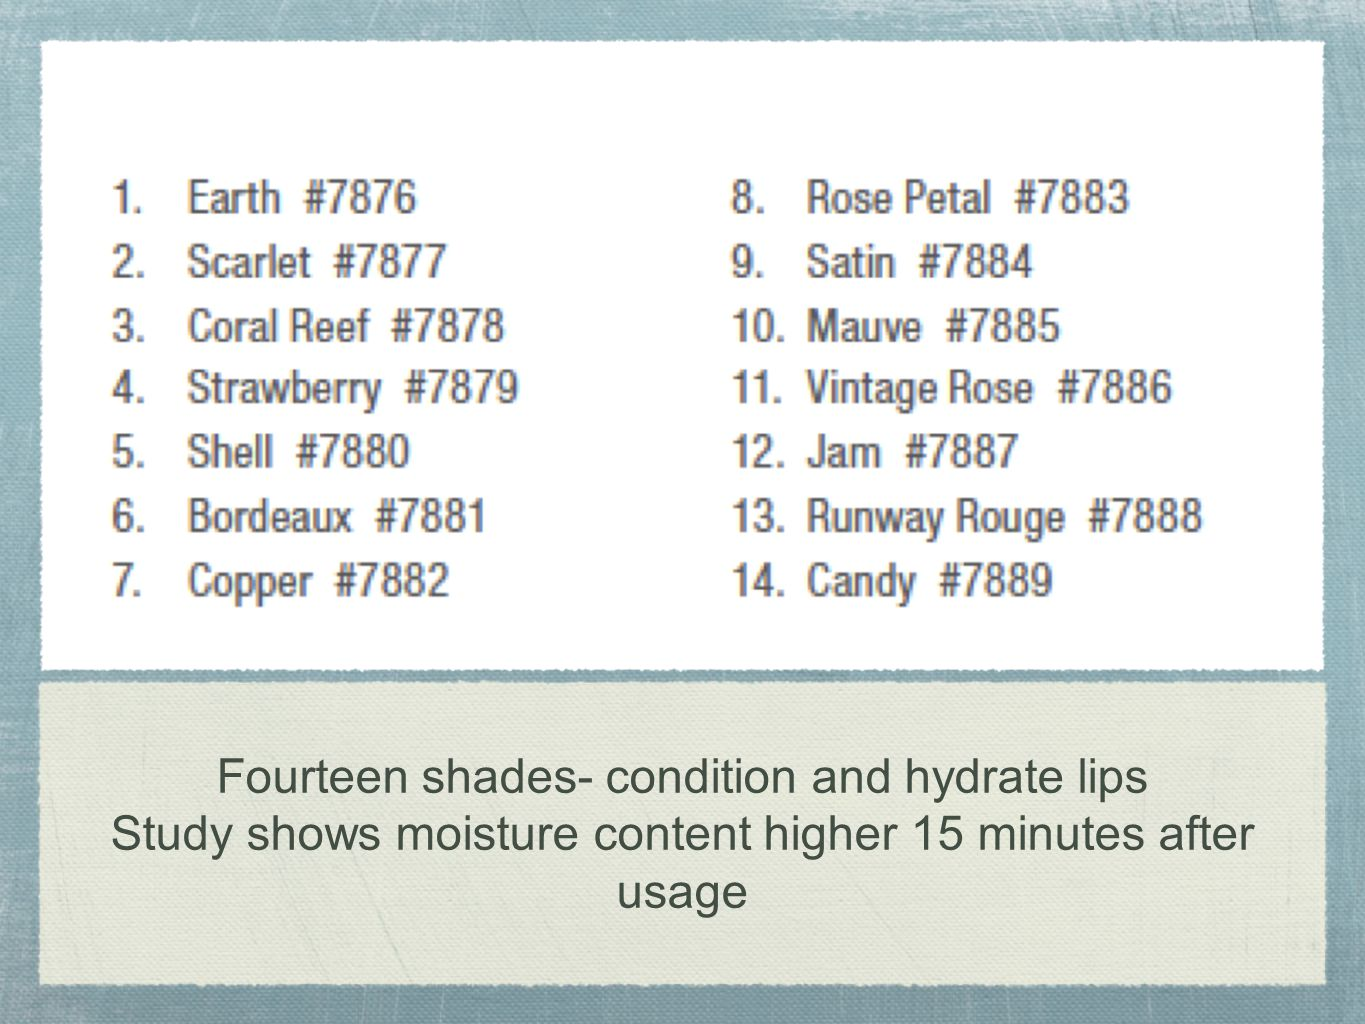 Fourteen shades- condition and hydrate lips Study shows moisture content higher 15 minutes after usage